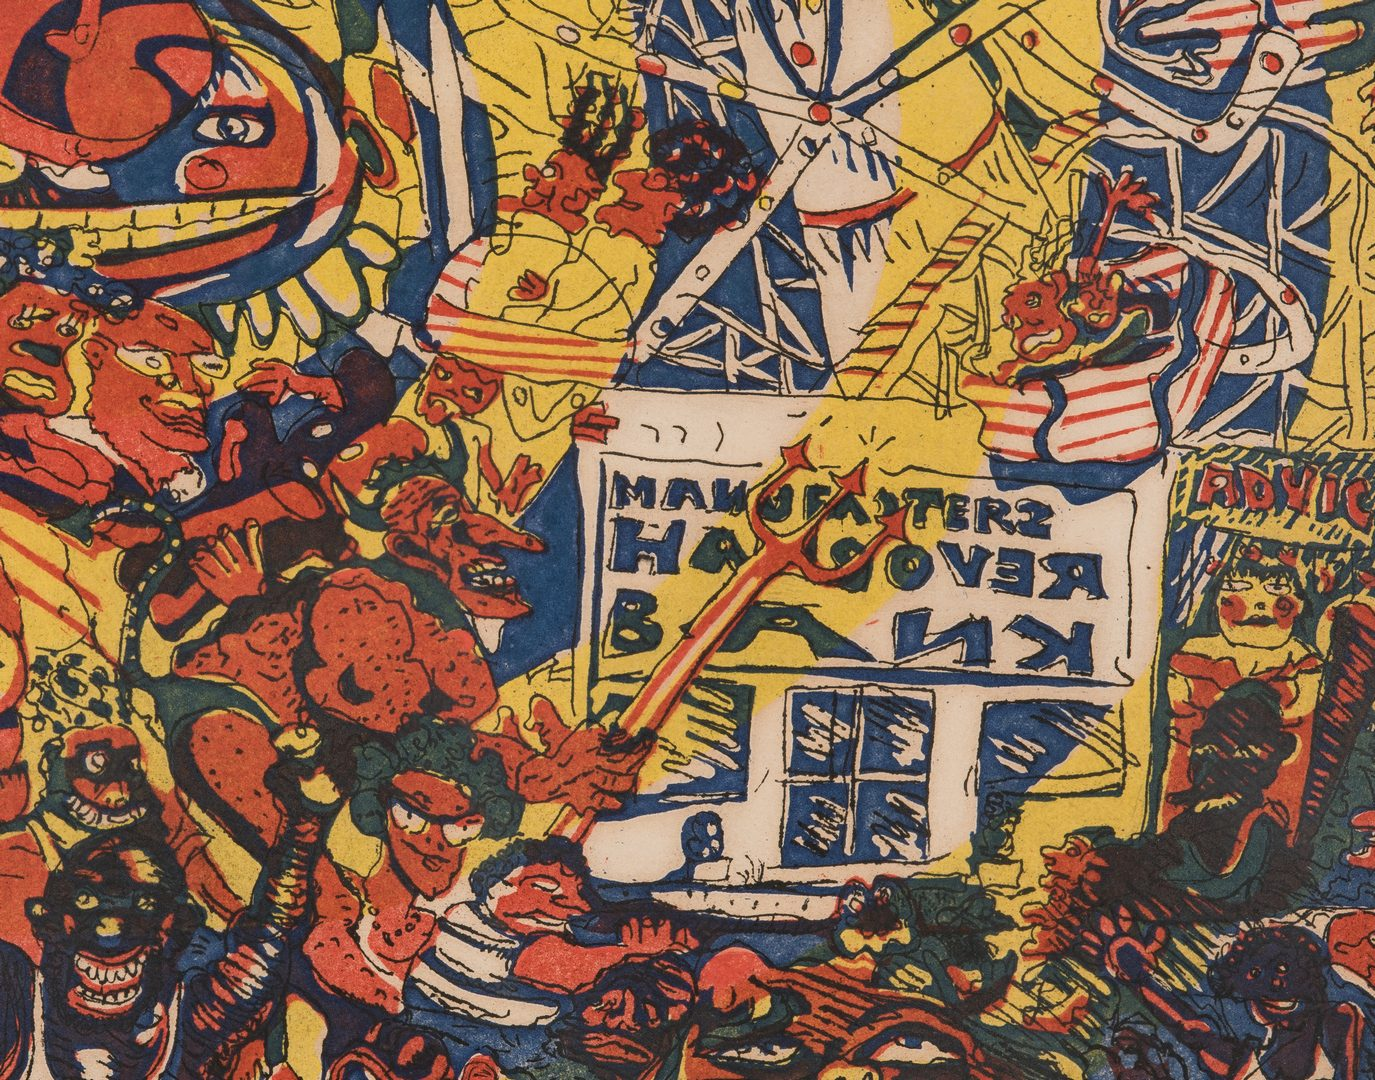 Lot 549: 2 Red Grooms Works on Paper, incl. Coney Island